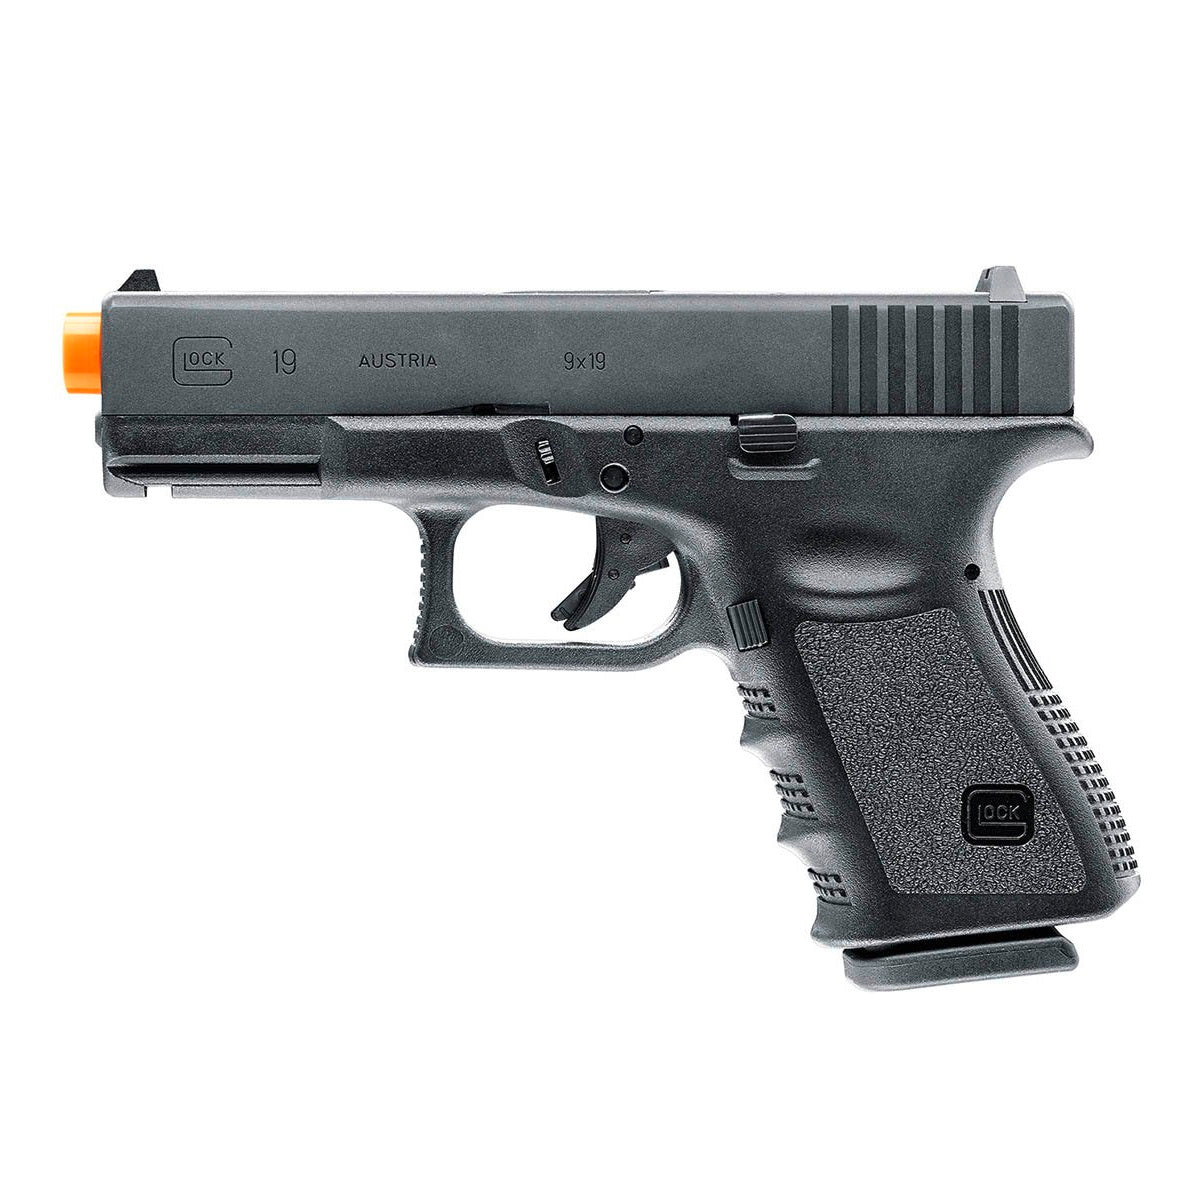 Elite Force GLOCK 19 Fully Licensed Gas Blowback Airsoft Pistol